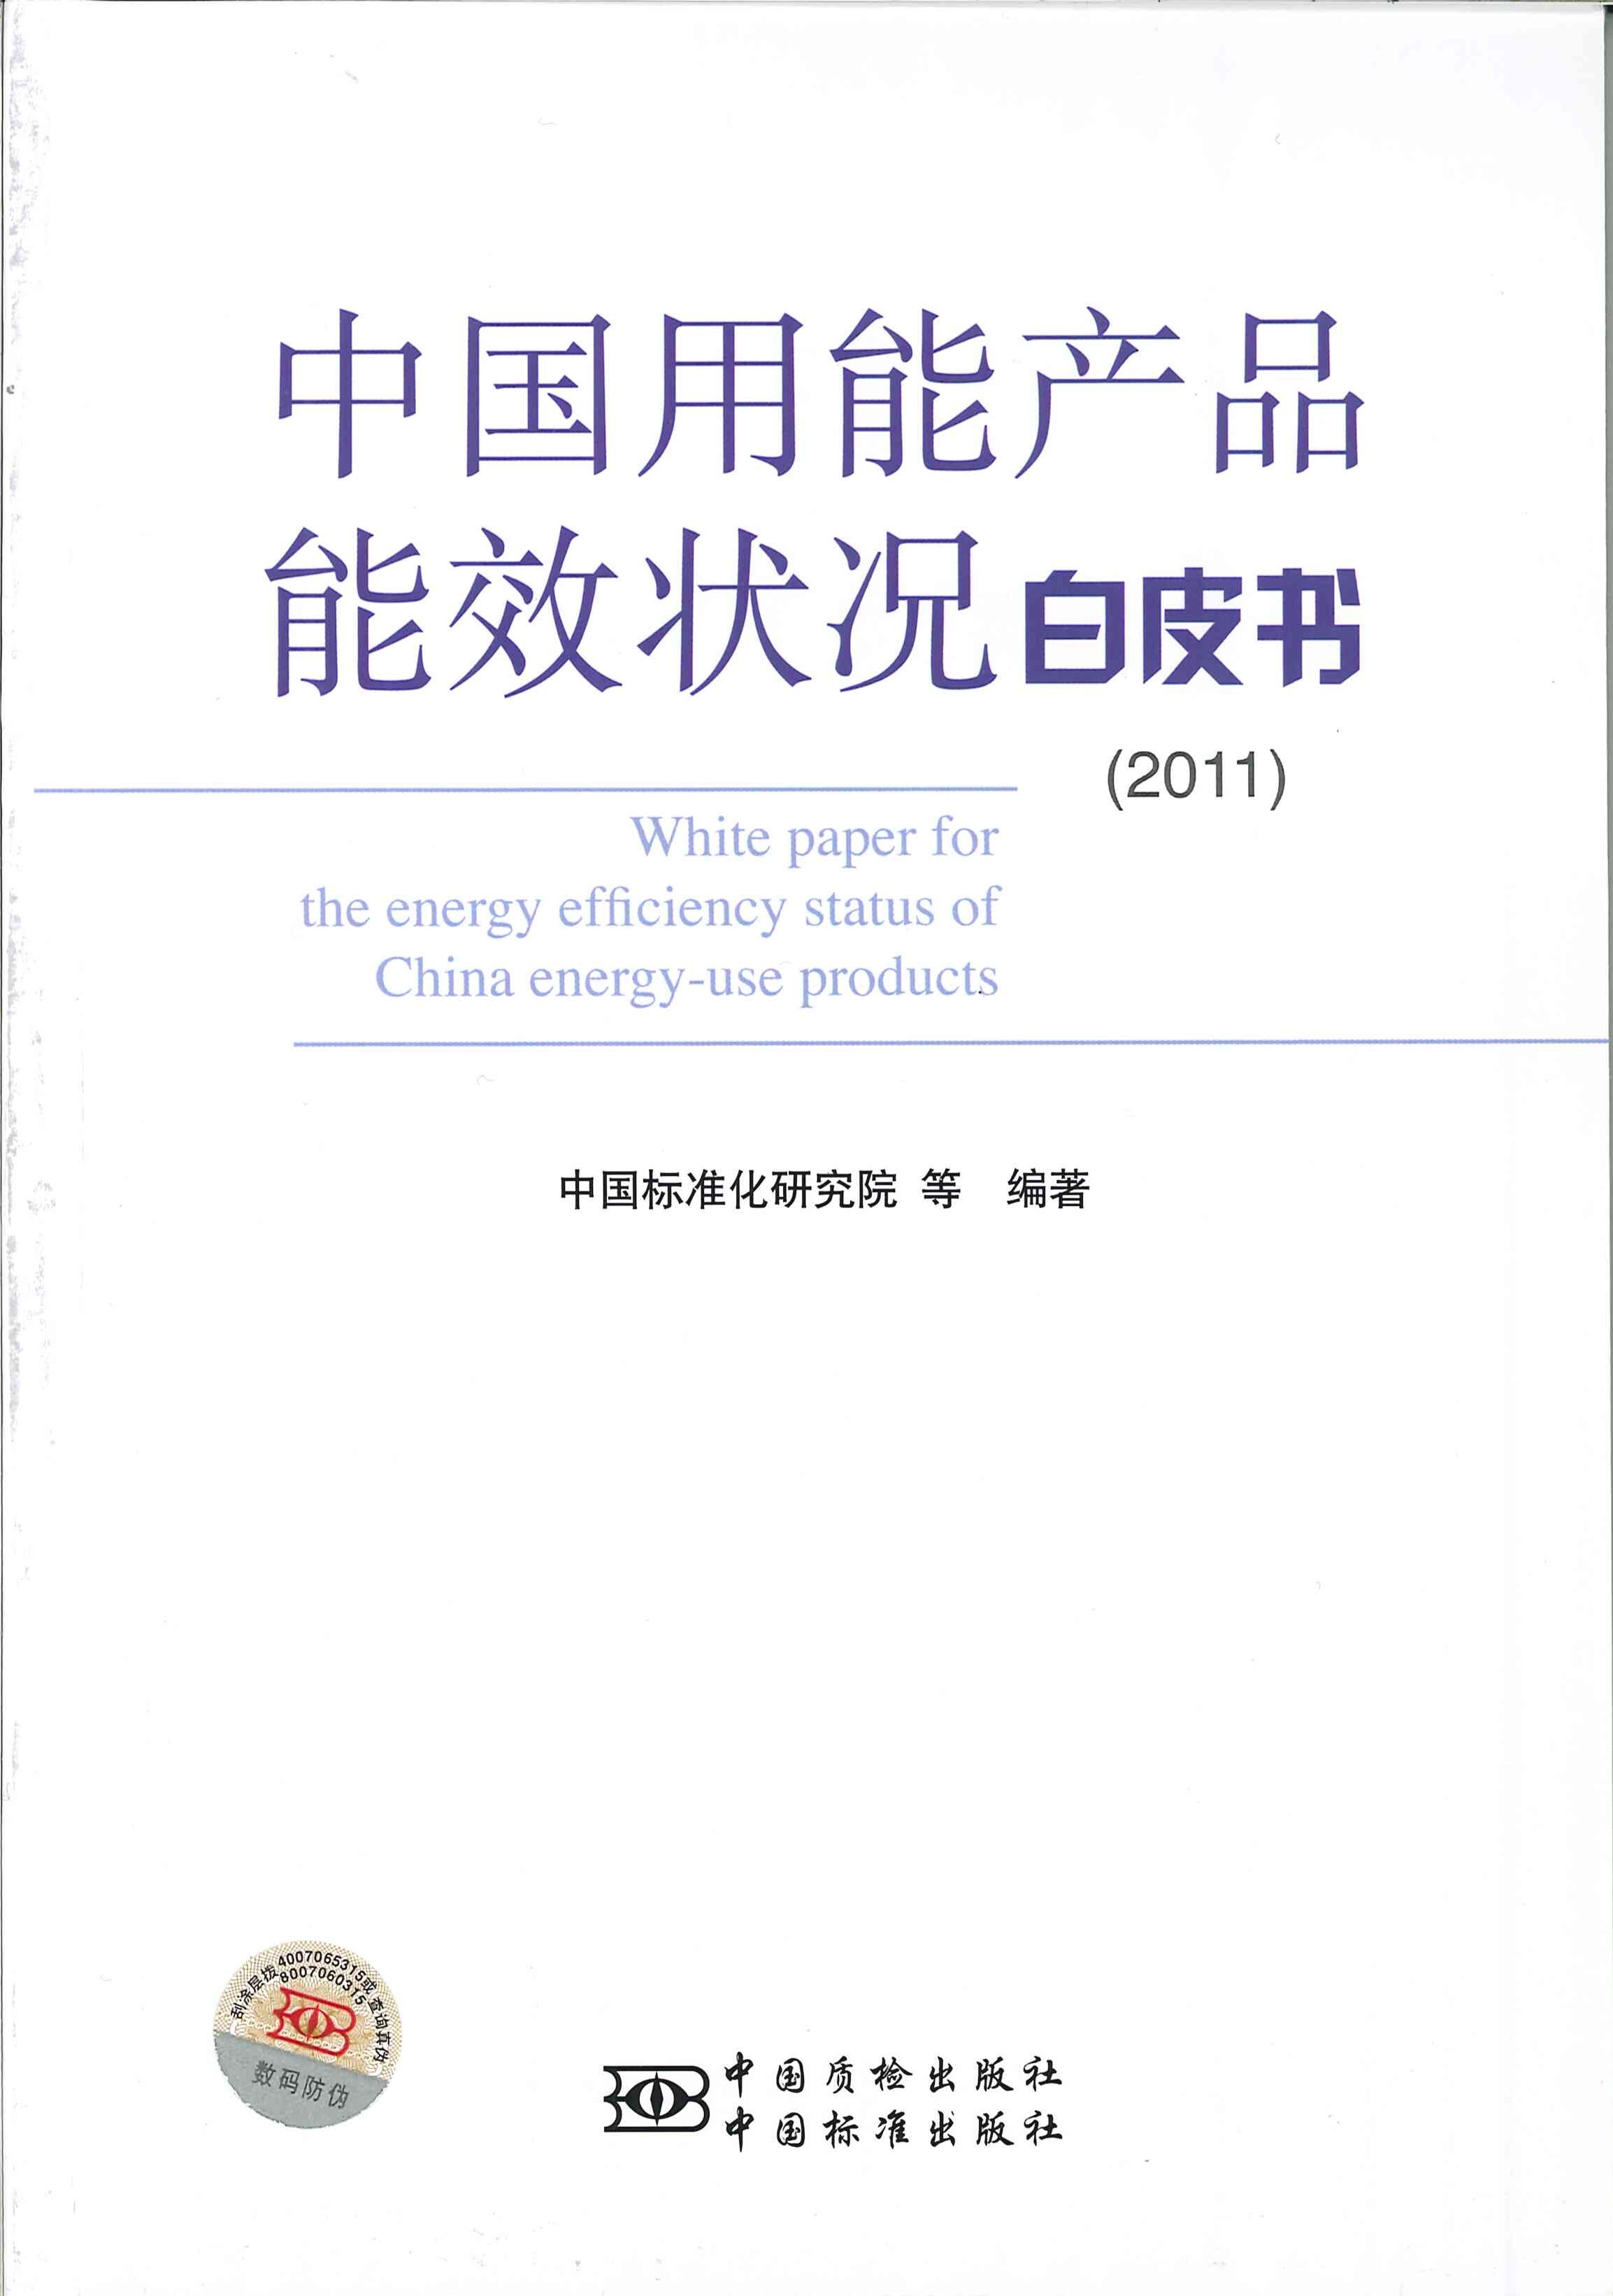 中国用能产品能效状况白皮书.2011=White paper for the energy efficiency status of China energy-use products